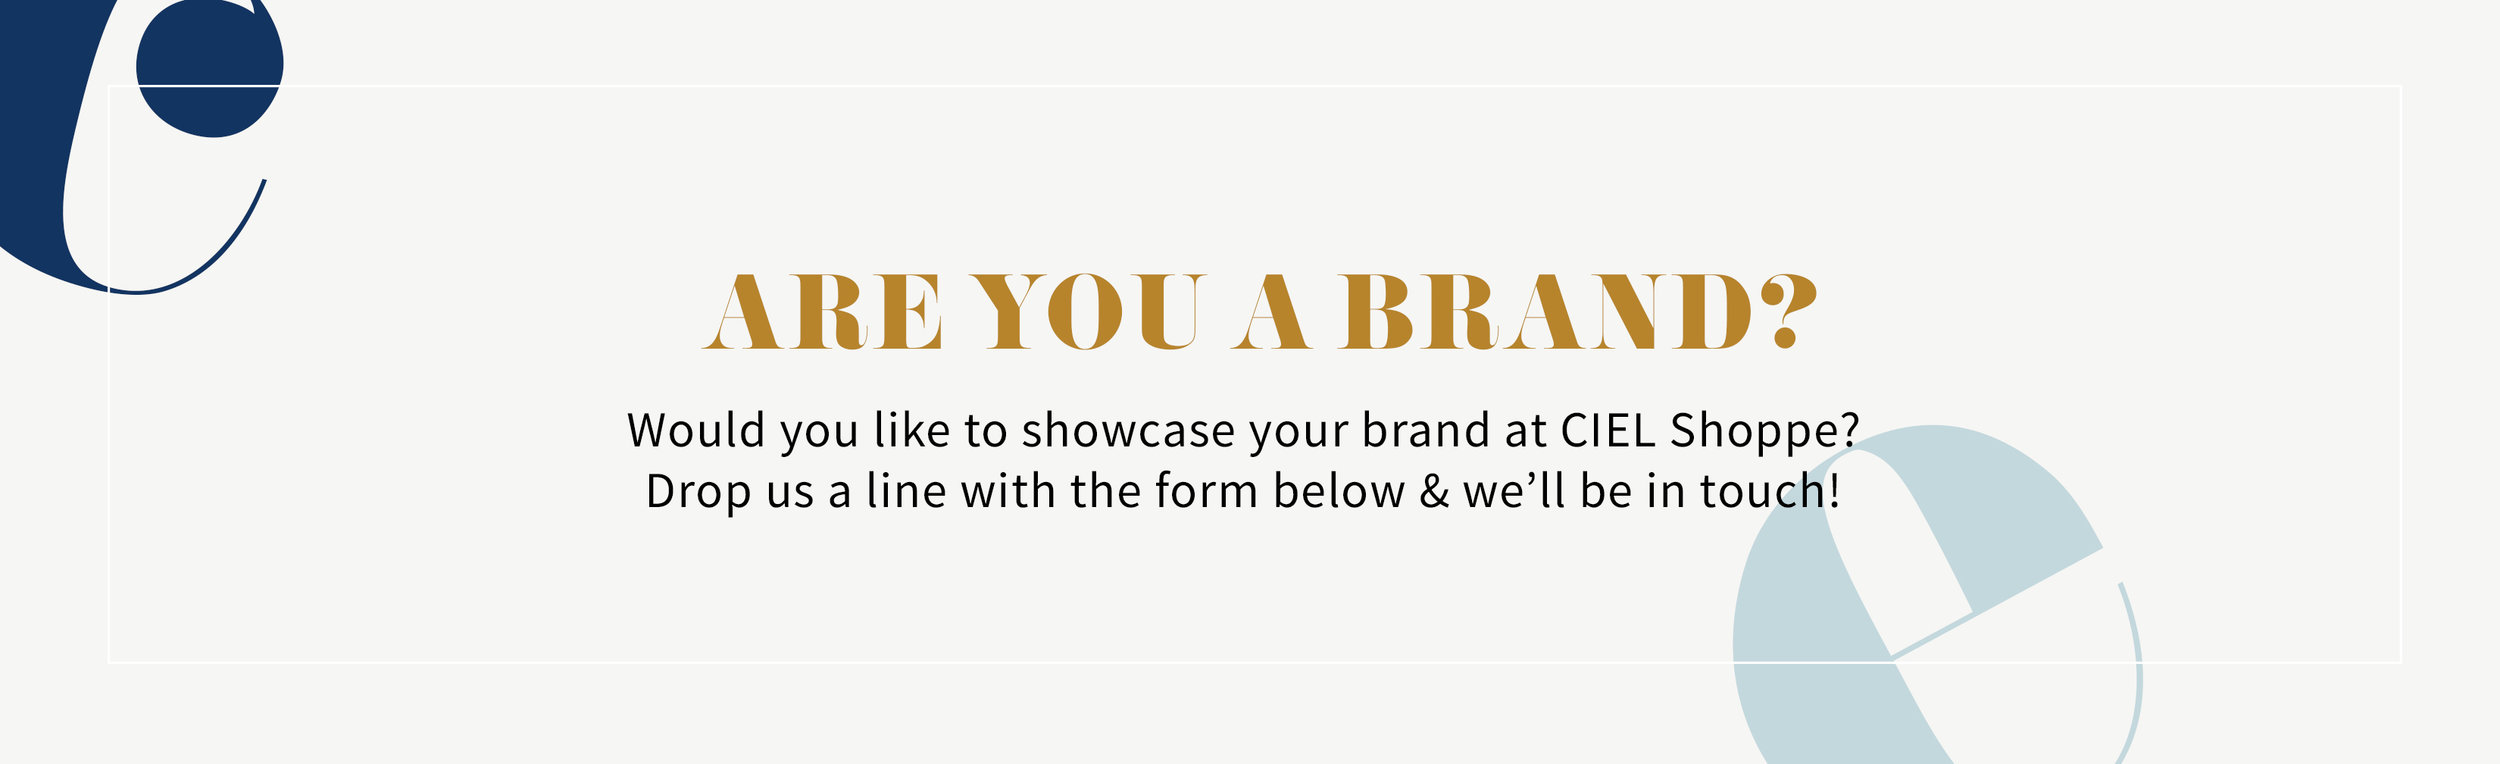 Are you a brand.jpg